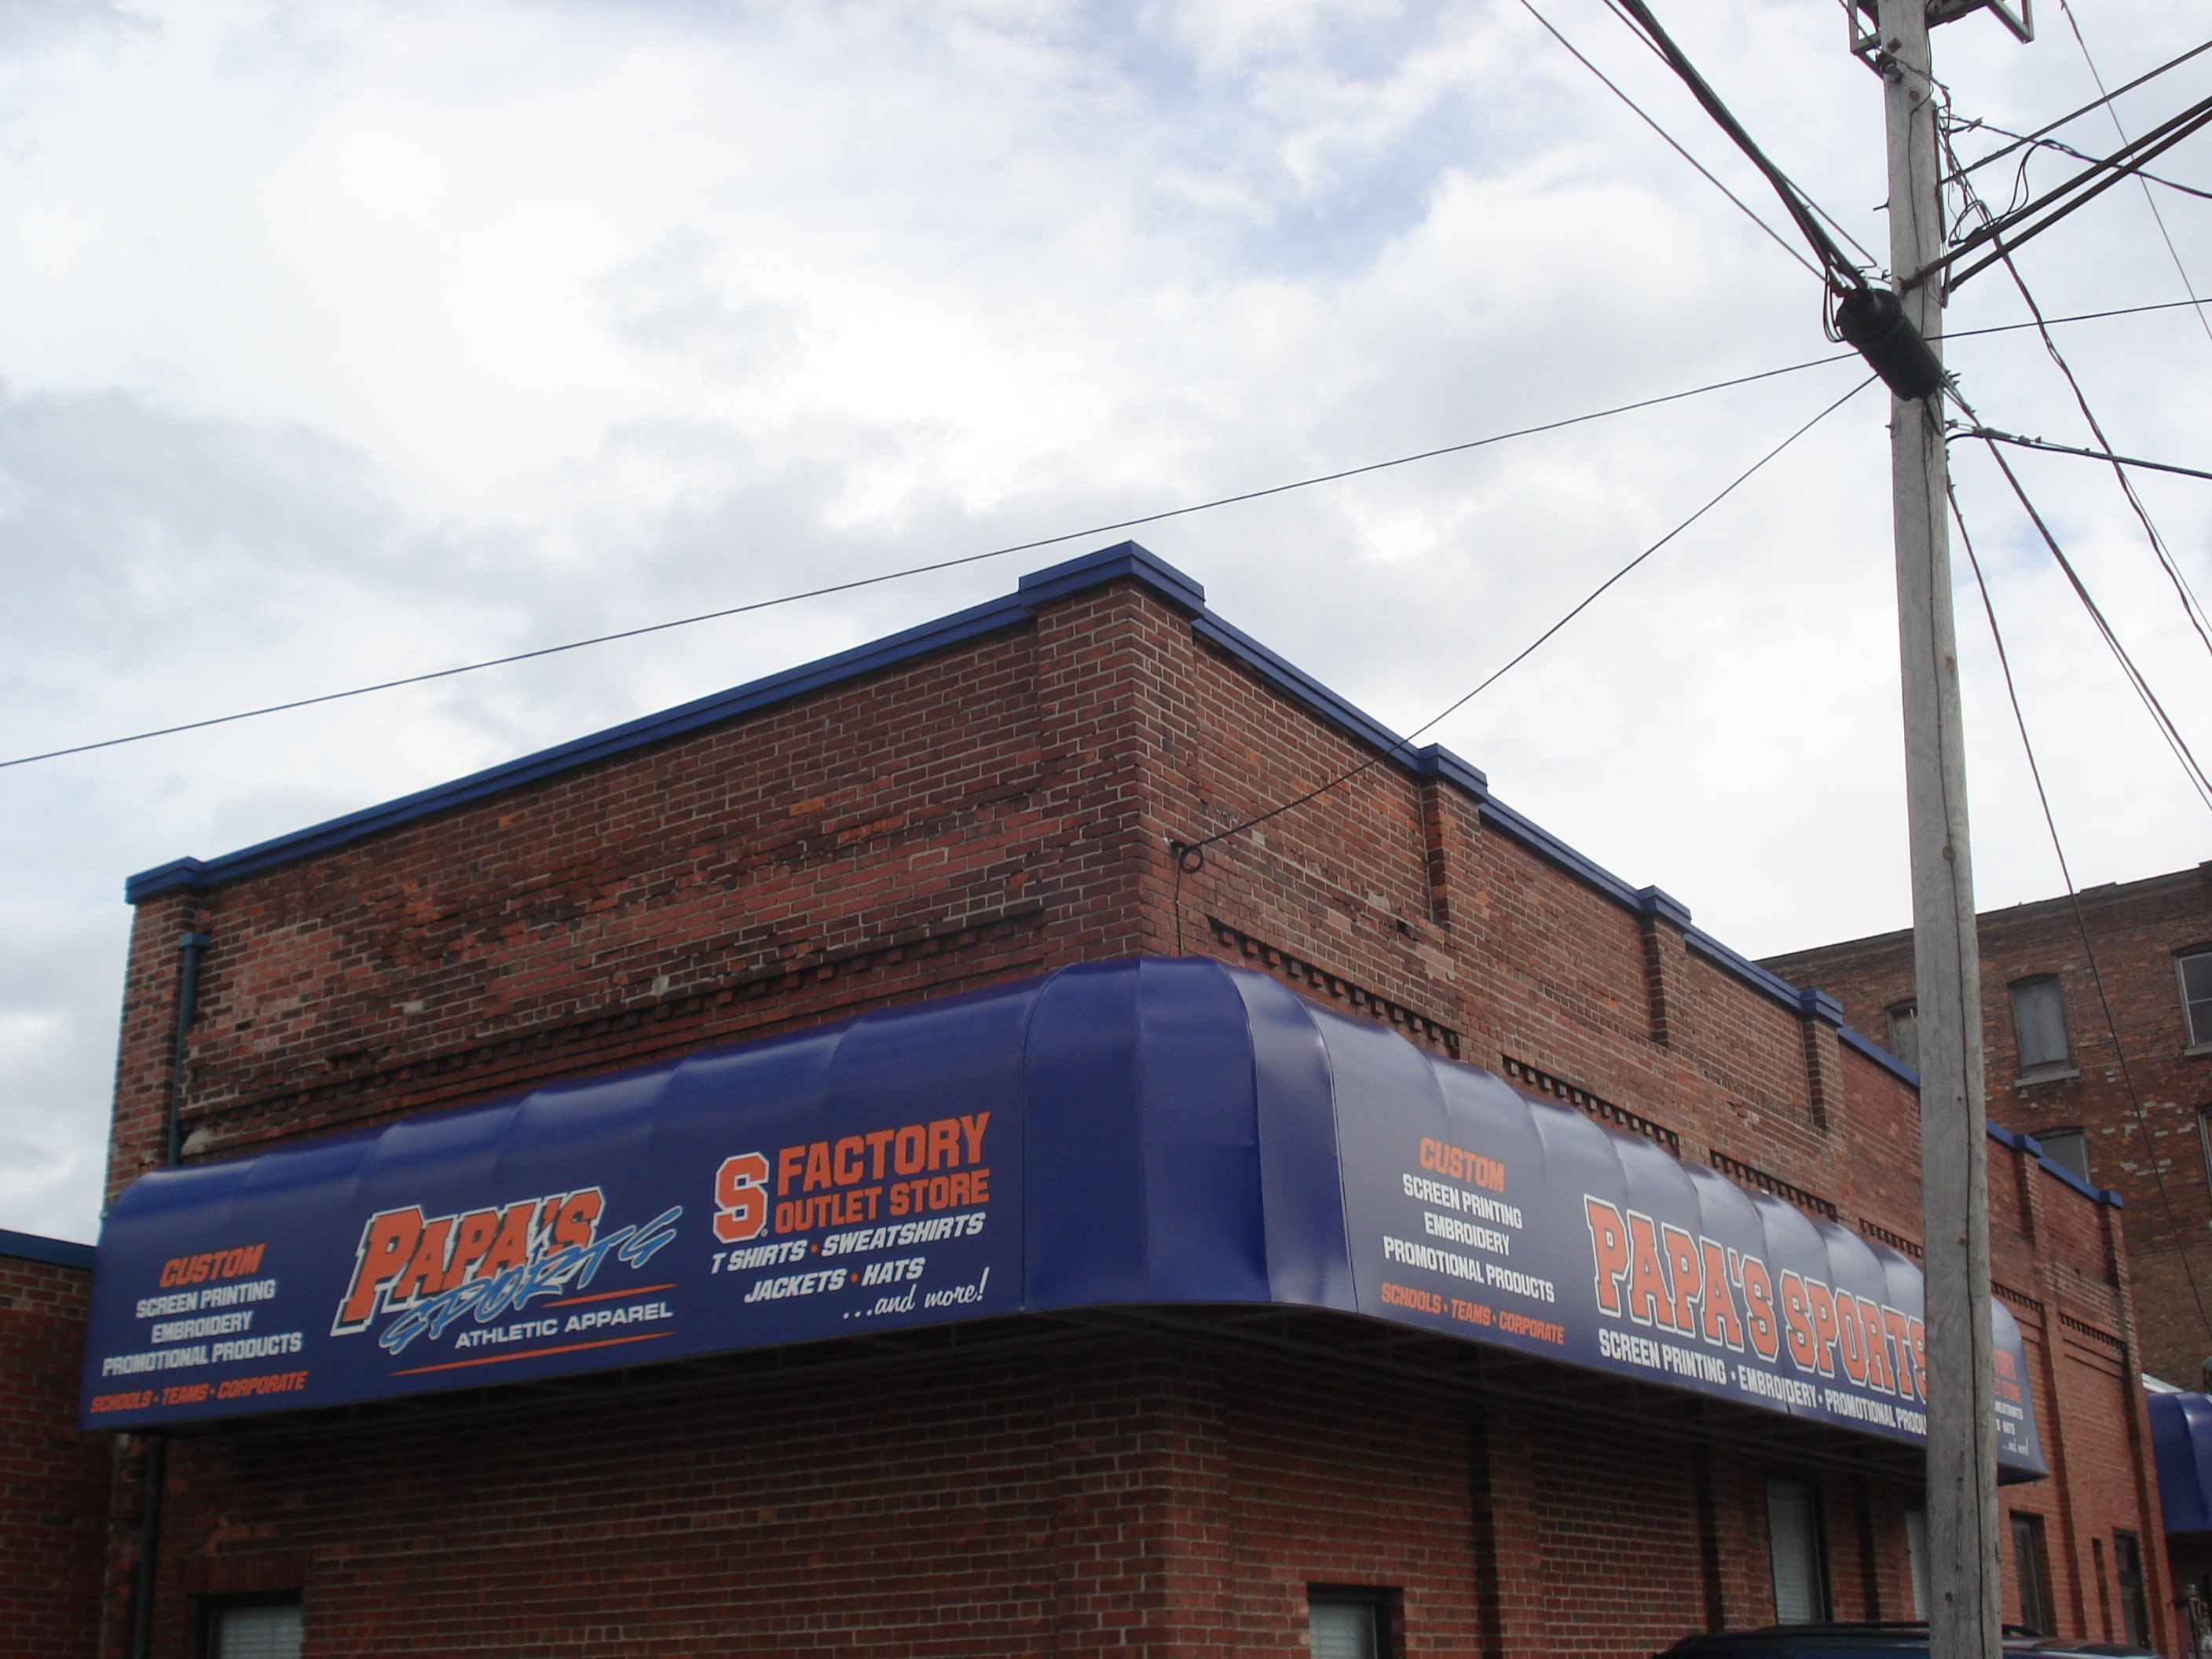 Commercial Awning Pictures